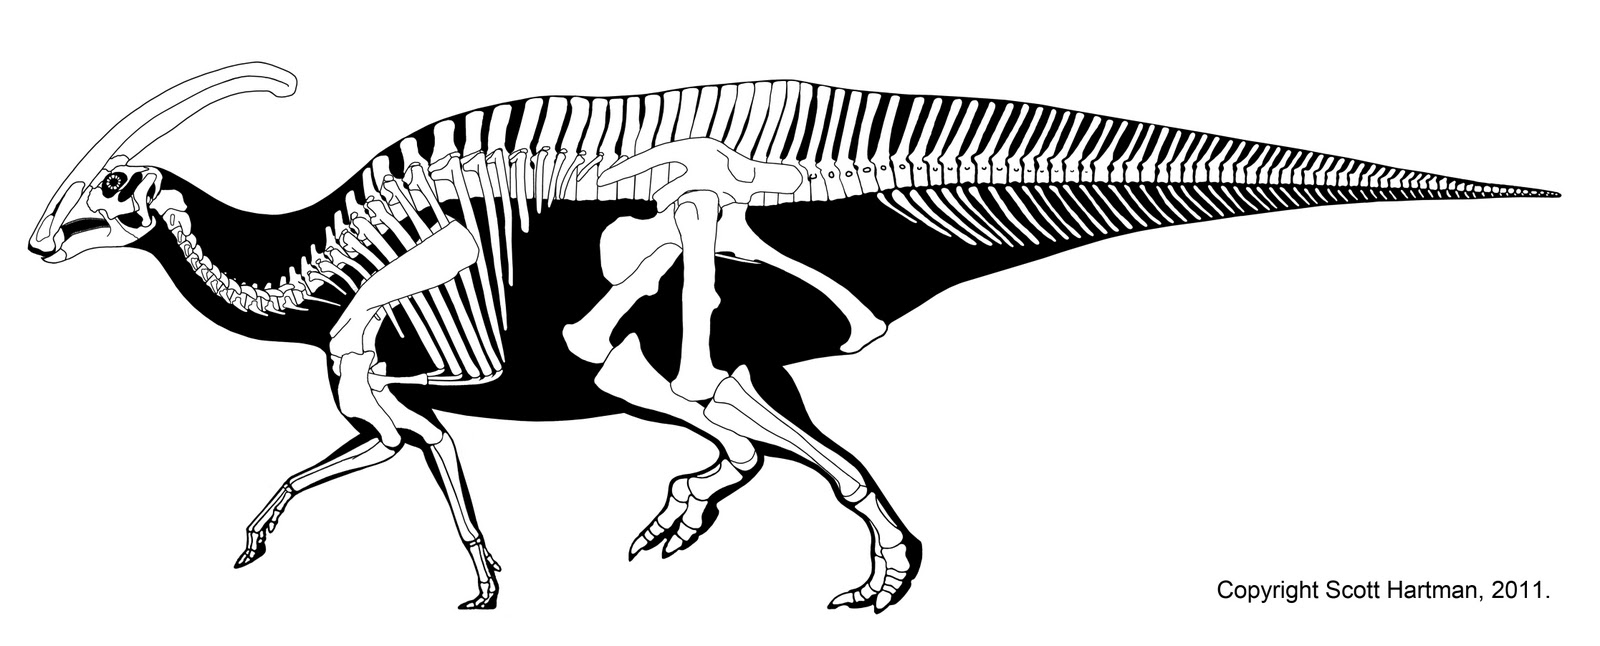 A History of Skeletal Drawings: Part 3 - Dino Renaissance to the ...